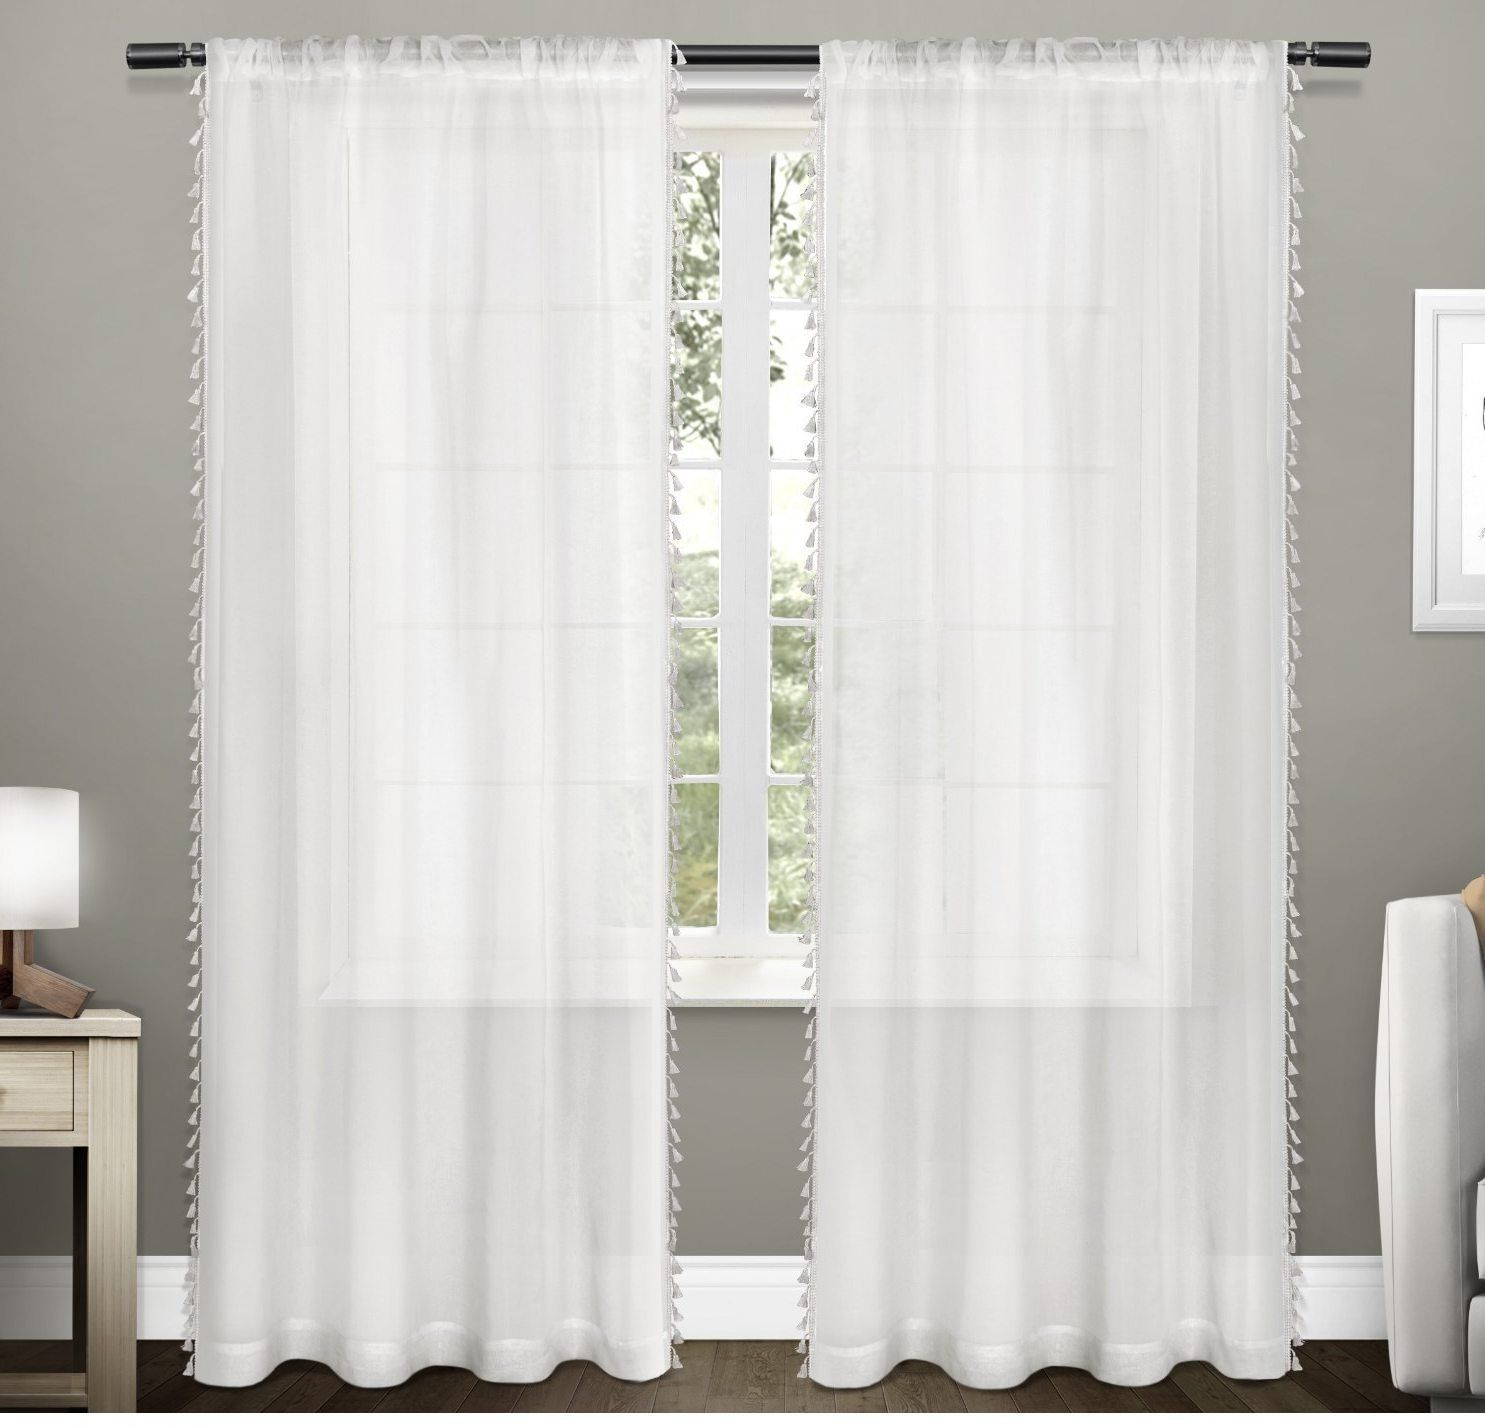 Girls Winter White Shabby Chic Window Curtain 84 Inch Pair Regarding Tassels Applique Sheer Rod Pocket Top Curtain Panel Pairs (View 8 of 30)